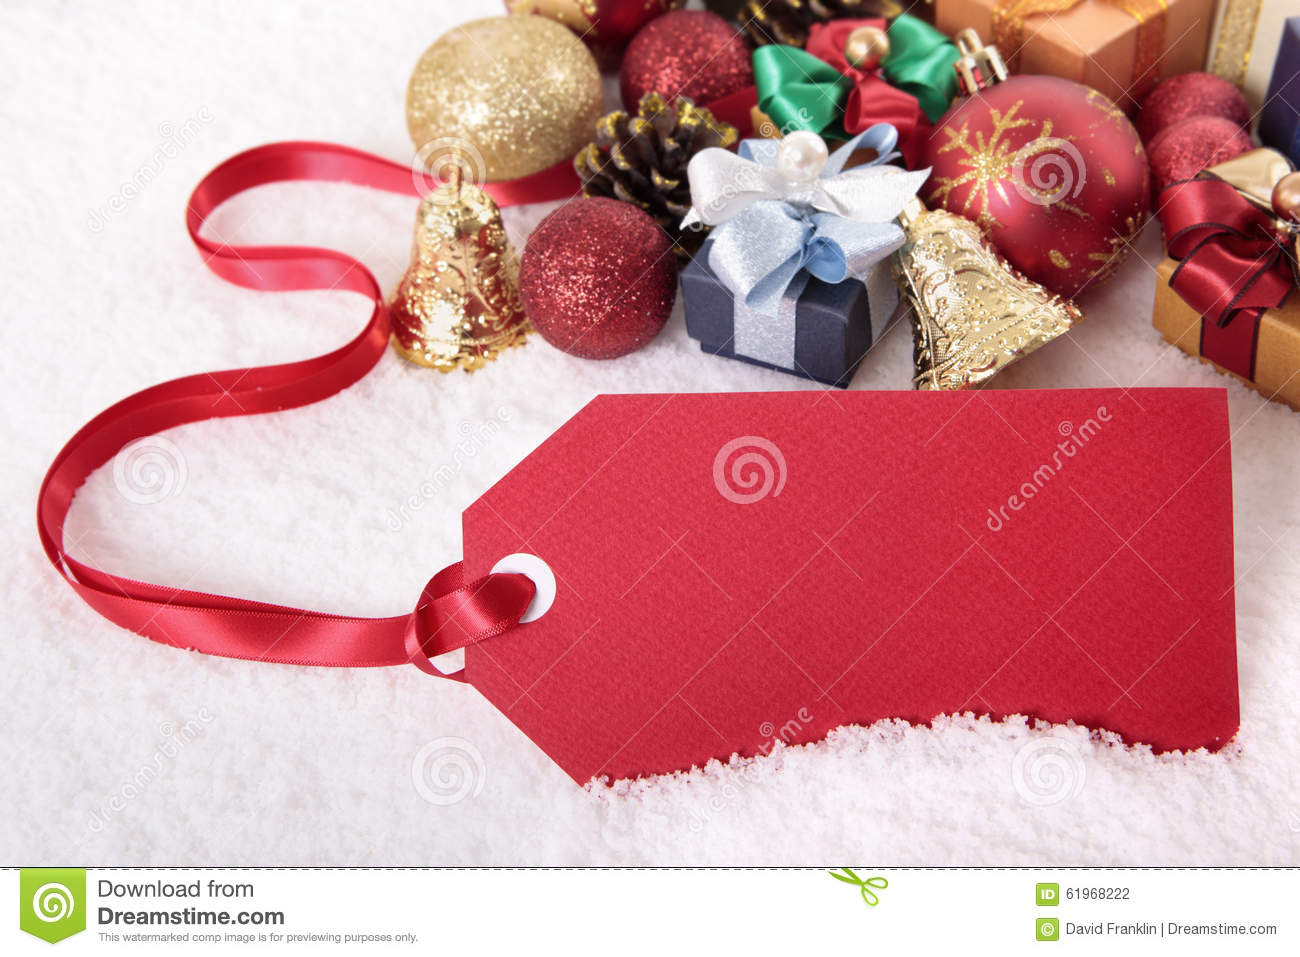 Red christmas gift tag on snow background with various